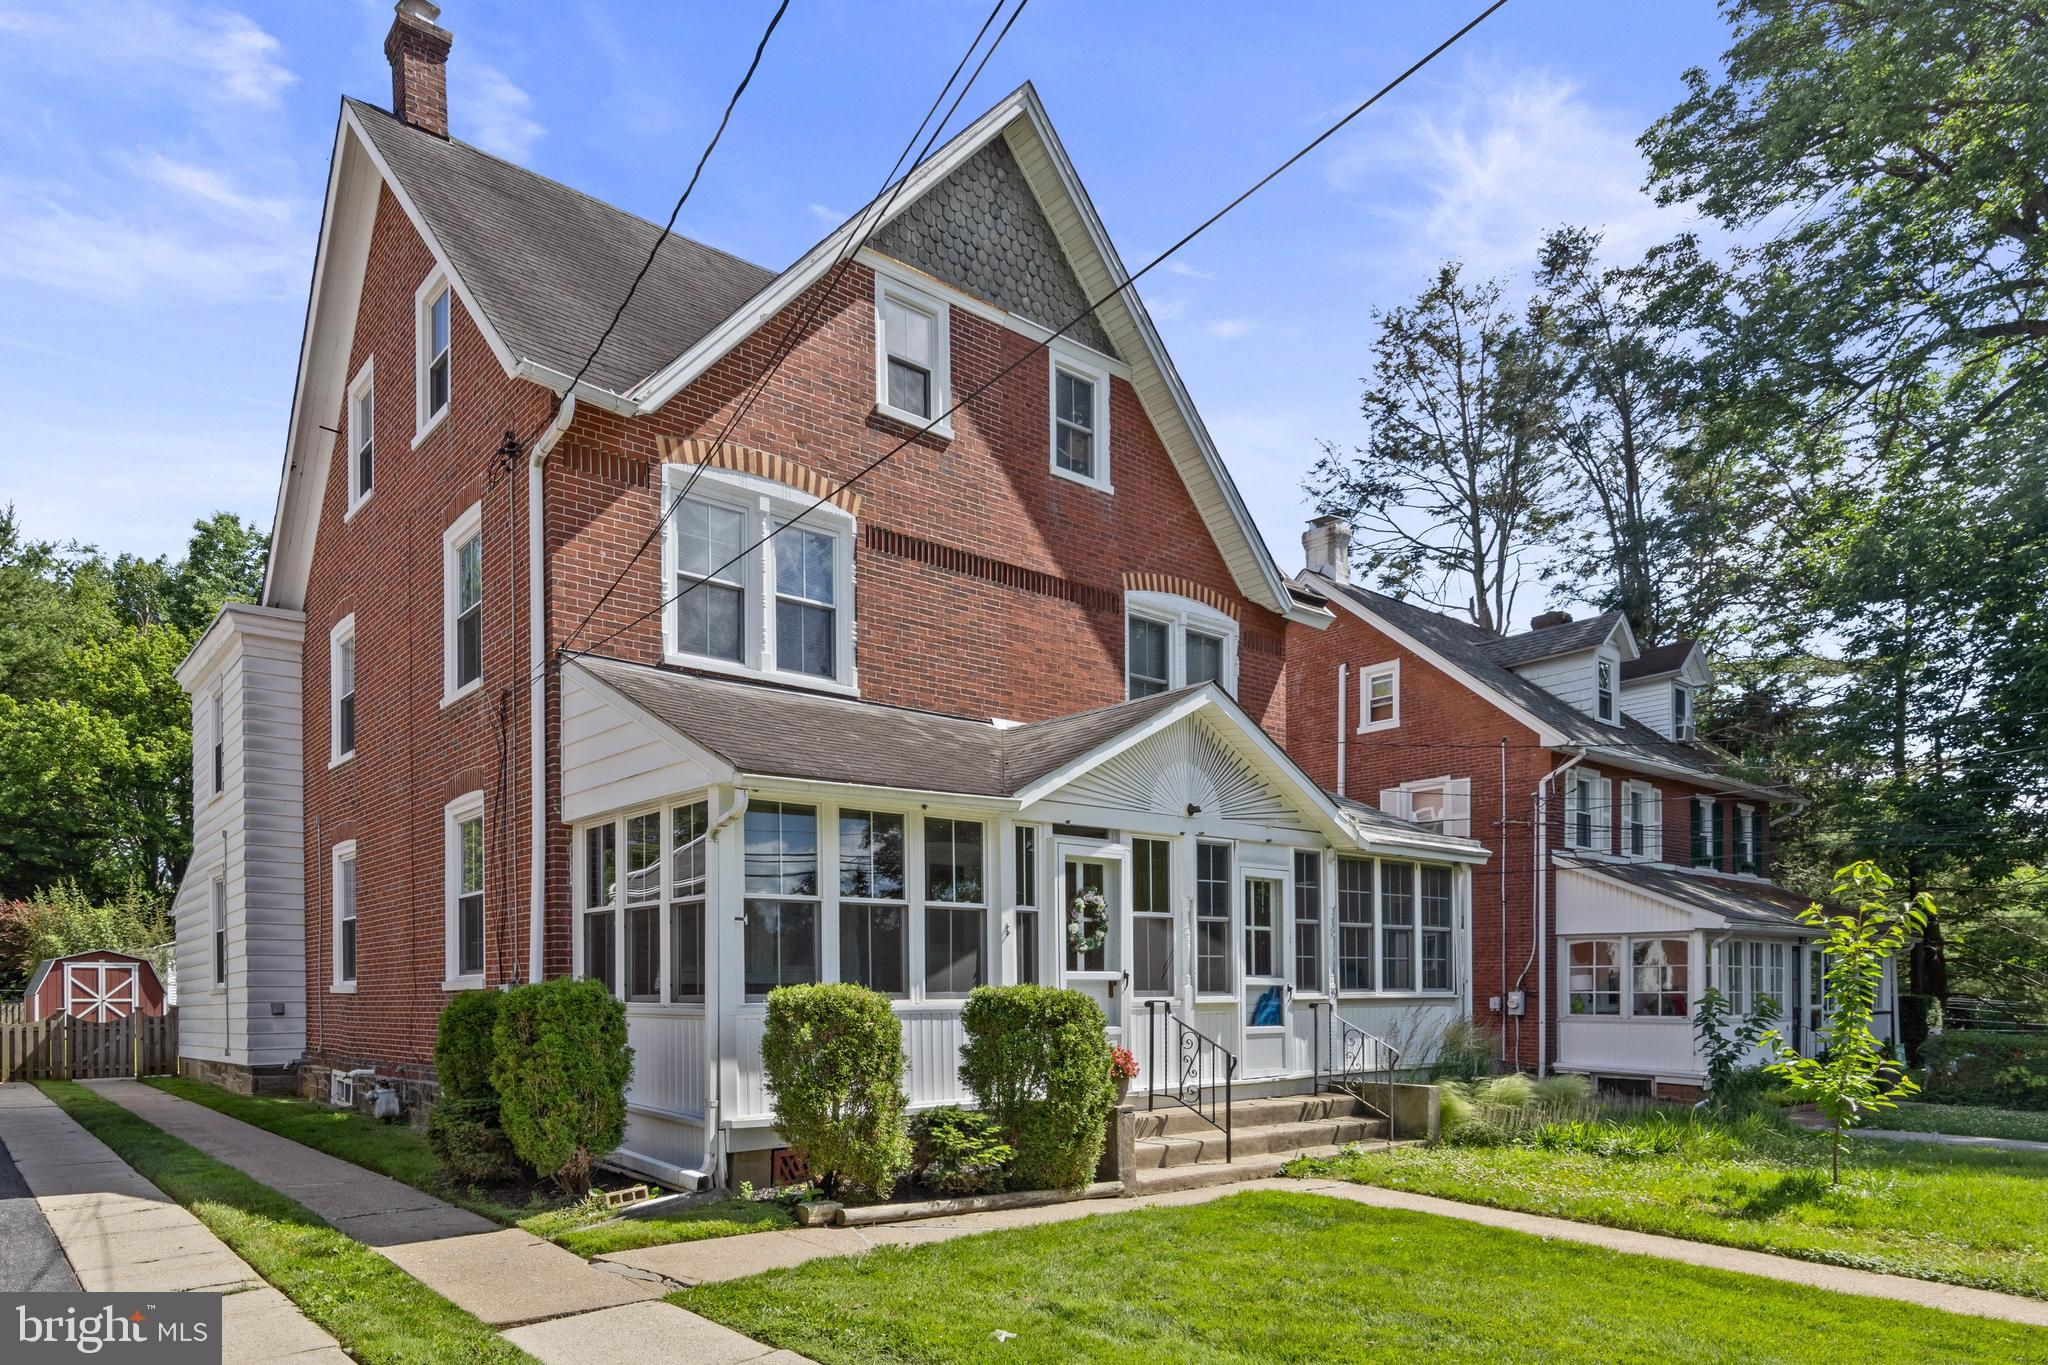 PRICE REDUCTION!!Looking to move into an affordable property in Radnor Township??...well now is your chance.  This impeccably maintained  brick twin in the heart of the Old Oaks section of Radnor dates back to the 1800's and has been loved by the same family over the last 100+ years. With heavy hearts they are selling this adorable home that has provided many cherished memories for multiple generations. It is time to pass it on and is a wonderful opportunity to make it your own.  Charm abounds  as an inviting front Porch welcomes you providing  streaming natural sunlight into the soul of the house. Gleaming hardwood floors carry you from the Living Room into the Dining Room and new windows can be found throughout.  The eat in Kitchen has been updated with stainless steel appliances and has access to a Mudroom that overlooks the manicured fenced-in  backyard. There are three nicely sized Bedrooms on the Second Floor with a Full Bathroom.  The Third Floor has a very large room that could be used for multiple purposes including a 4th Bedroom, Office and/or Gym. The owner has completed a pre-inspection and is happy to provide any interested buyers with the report. All showings begin THURSDAY JUNE 24th.